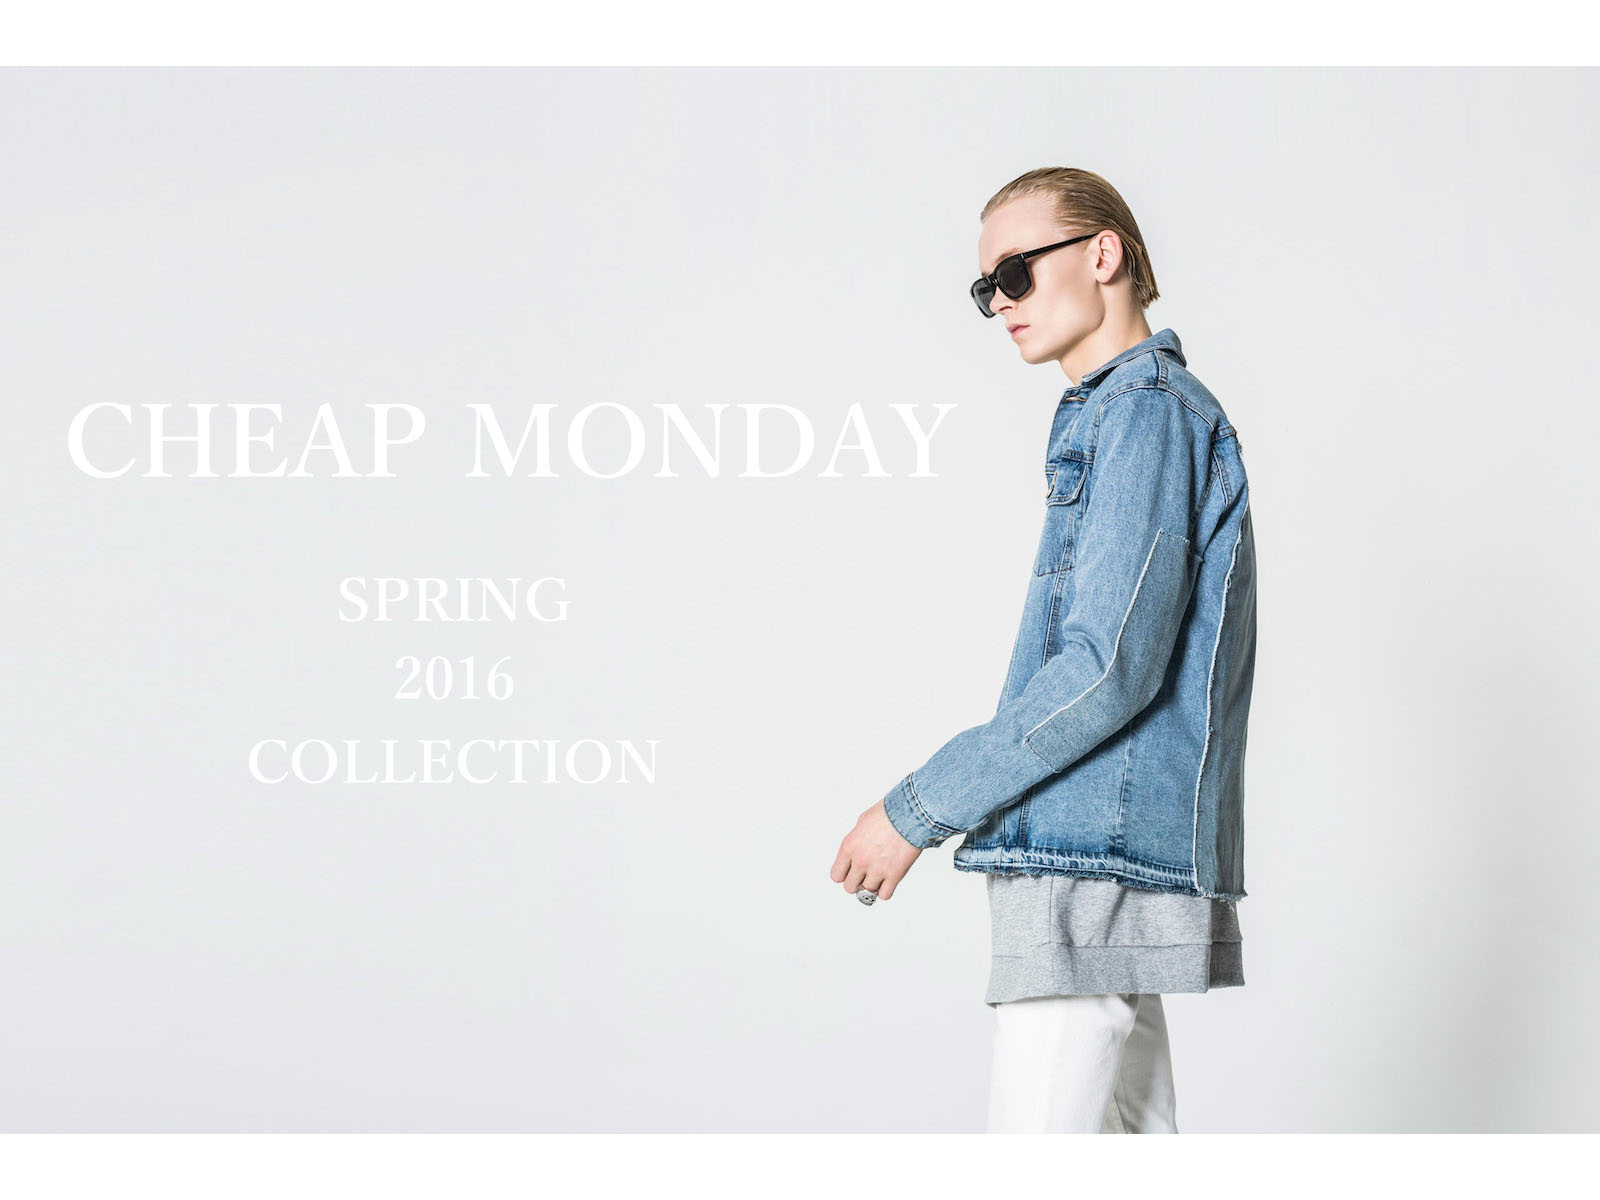 NEW ARRIVAL – CHEAP MONDAY SPRING 2016 2nd Delivery